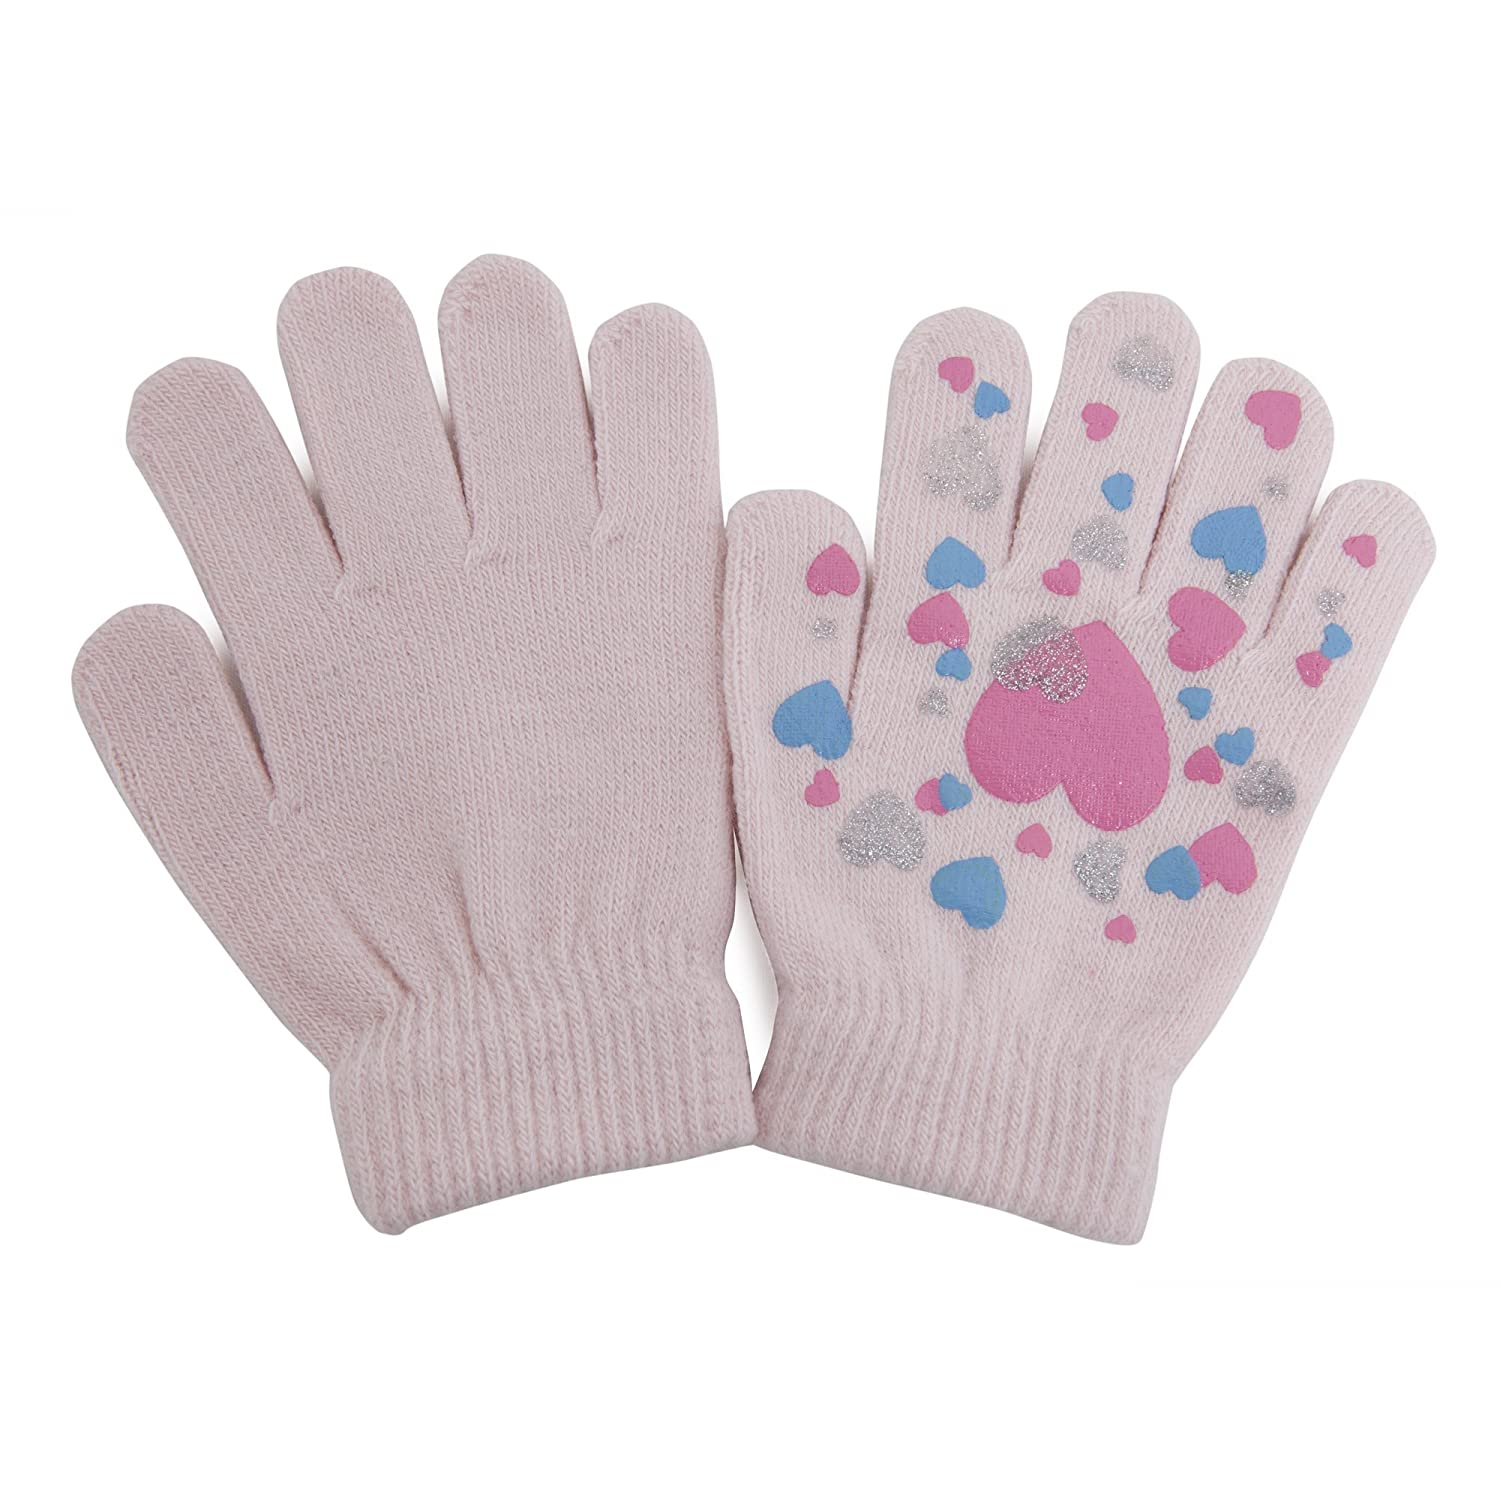 Girls Fun Winter Magic Gloves with Rubber Print (Up to 12 years) (Baby Pink) UTGL473_5